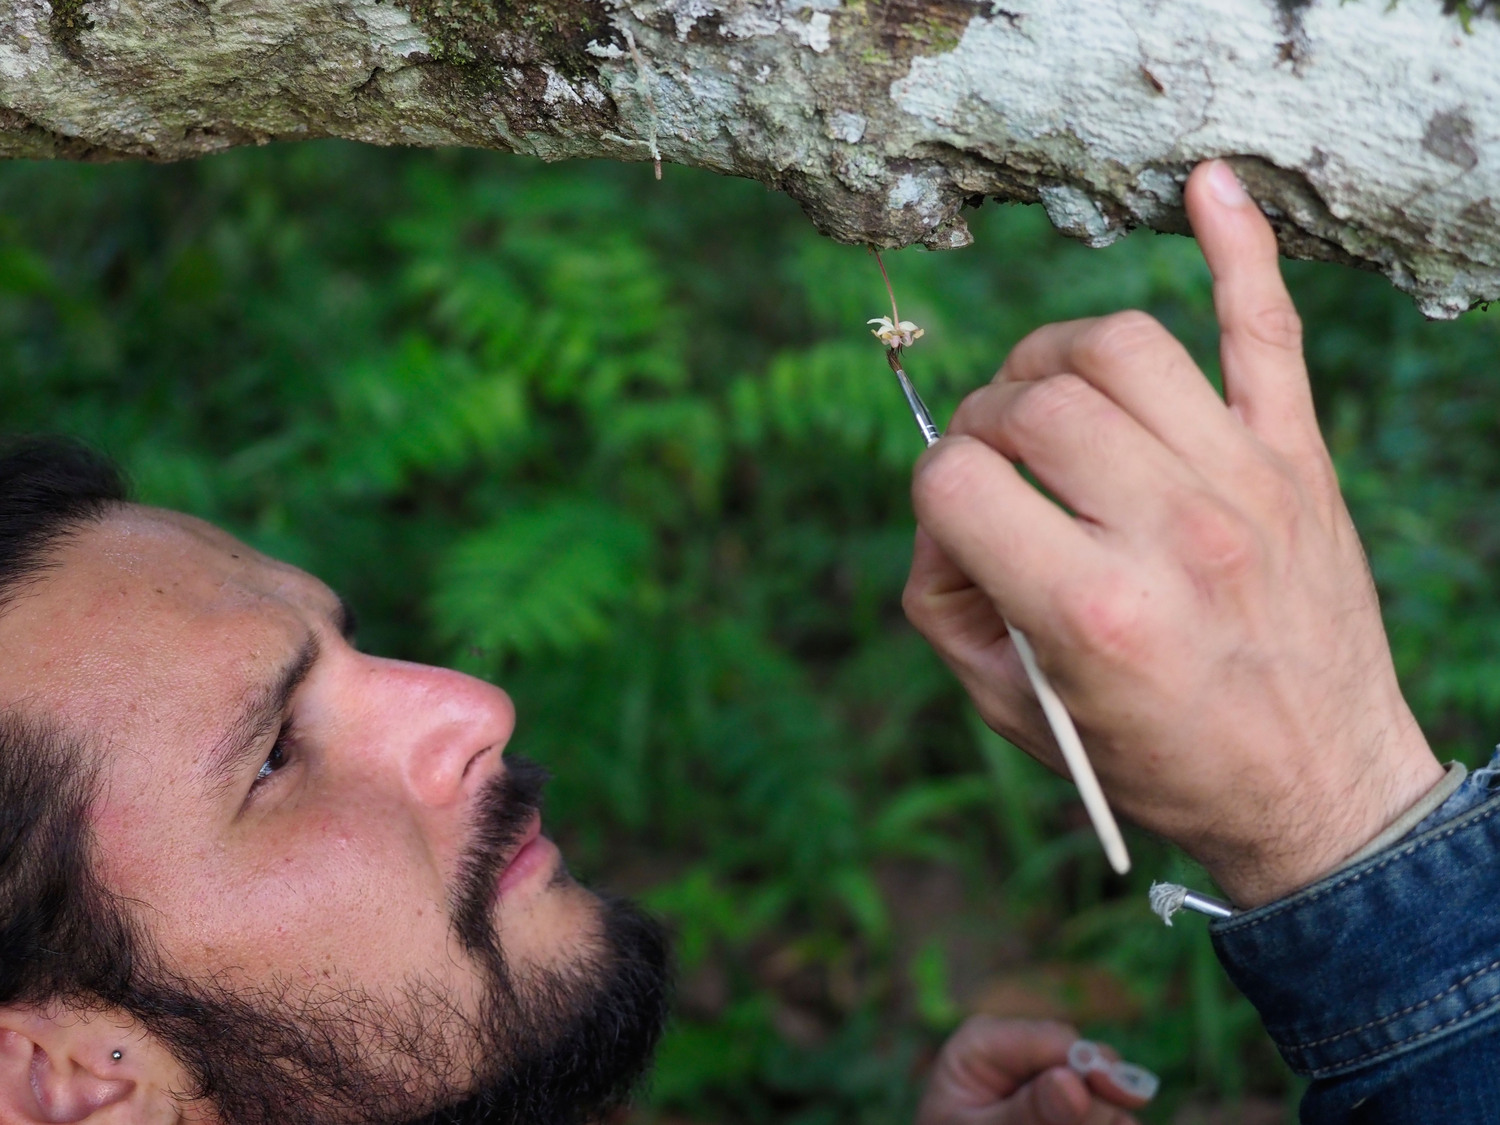 Manuel Toledo-Hernandez, first author and PhD student in Agroecology at the University of Göttingen, pollinating a cocoa flower by hand